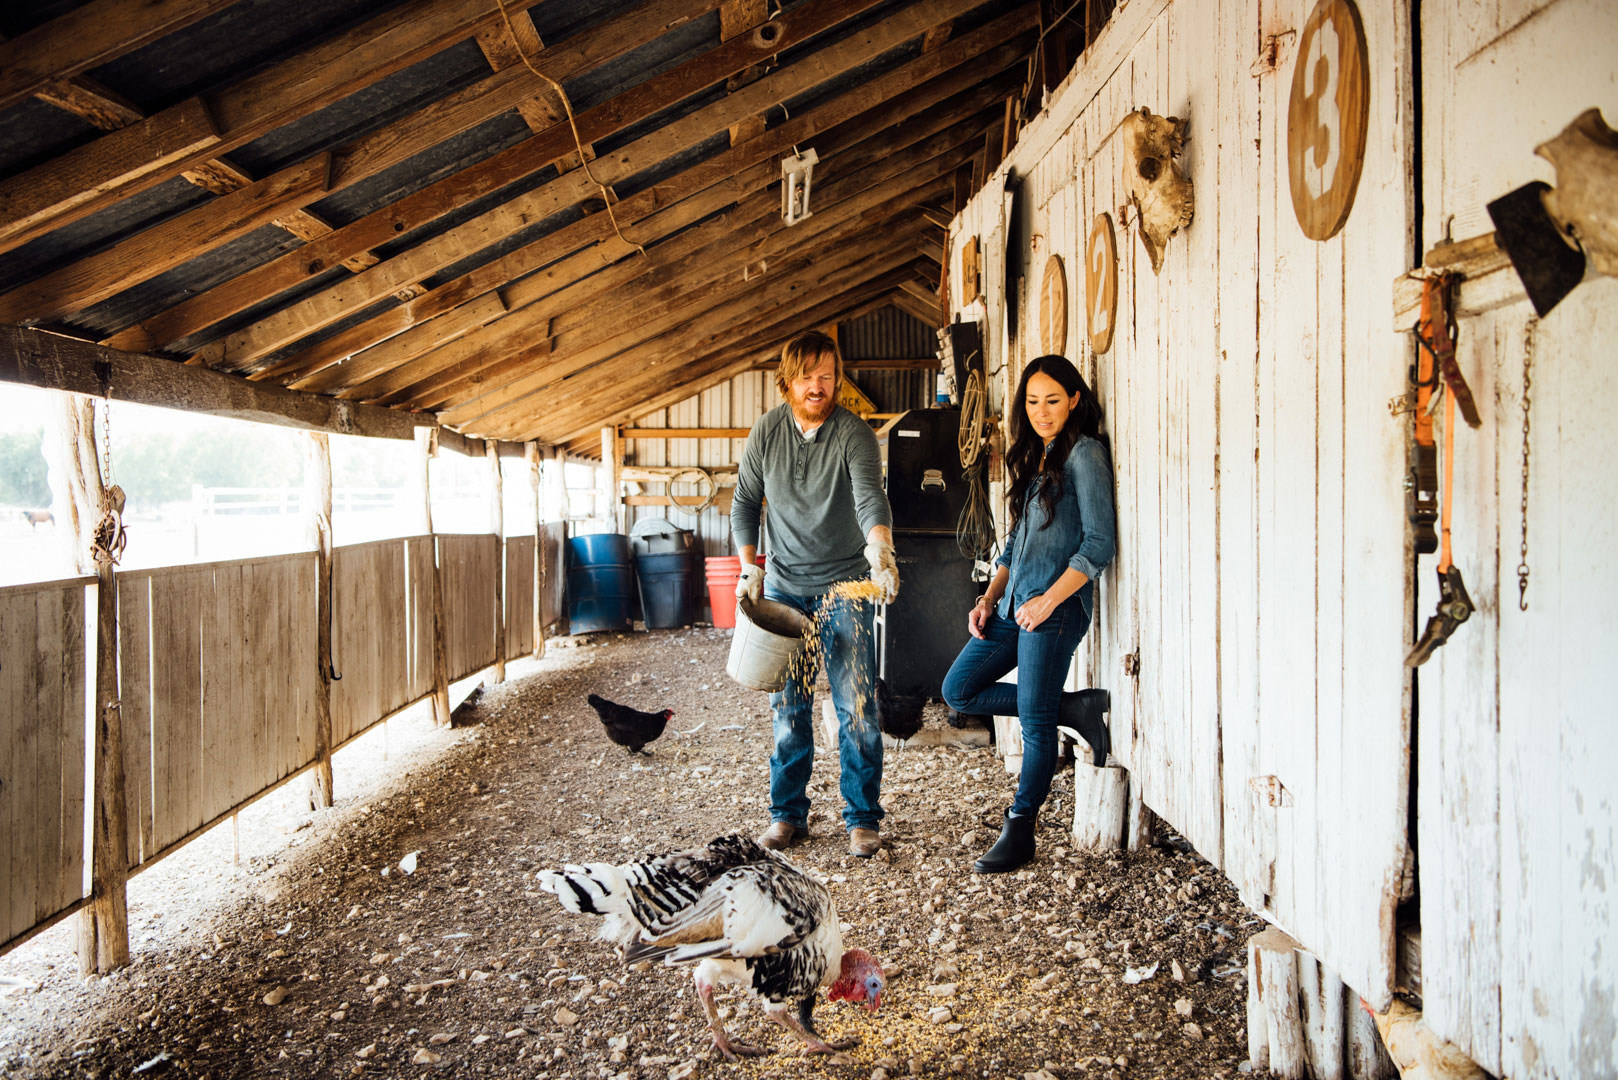 Chip and Joanna Gaines Are Ready to Risk It All